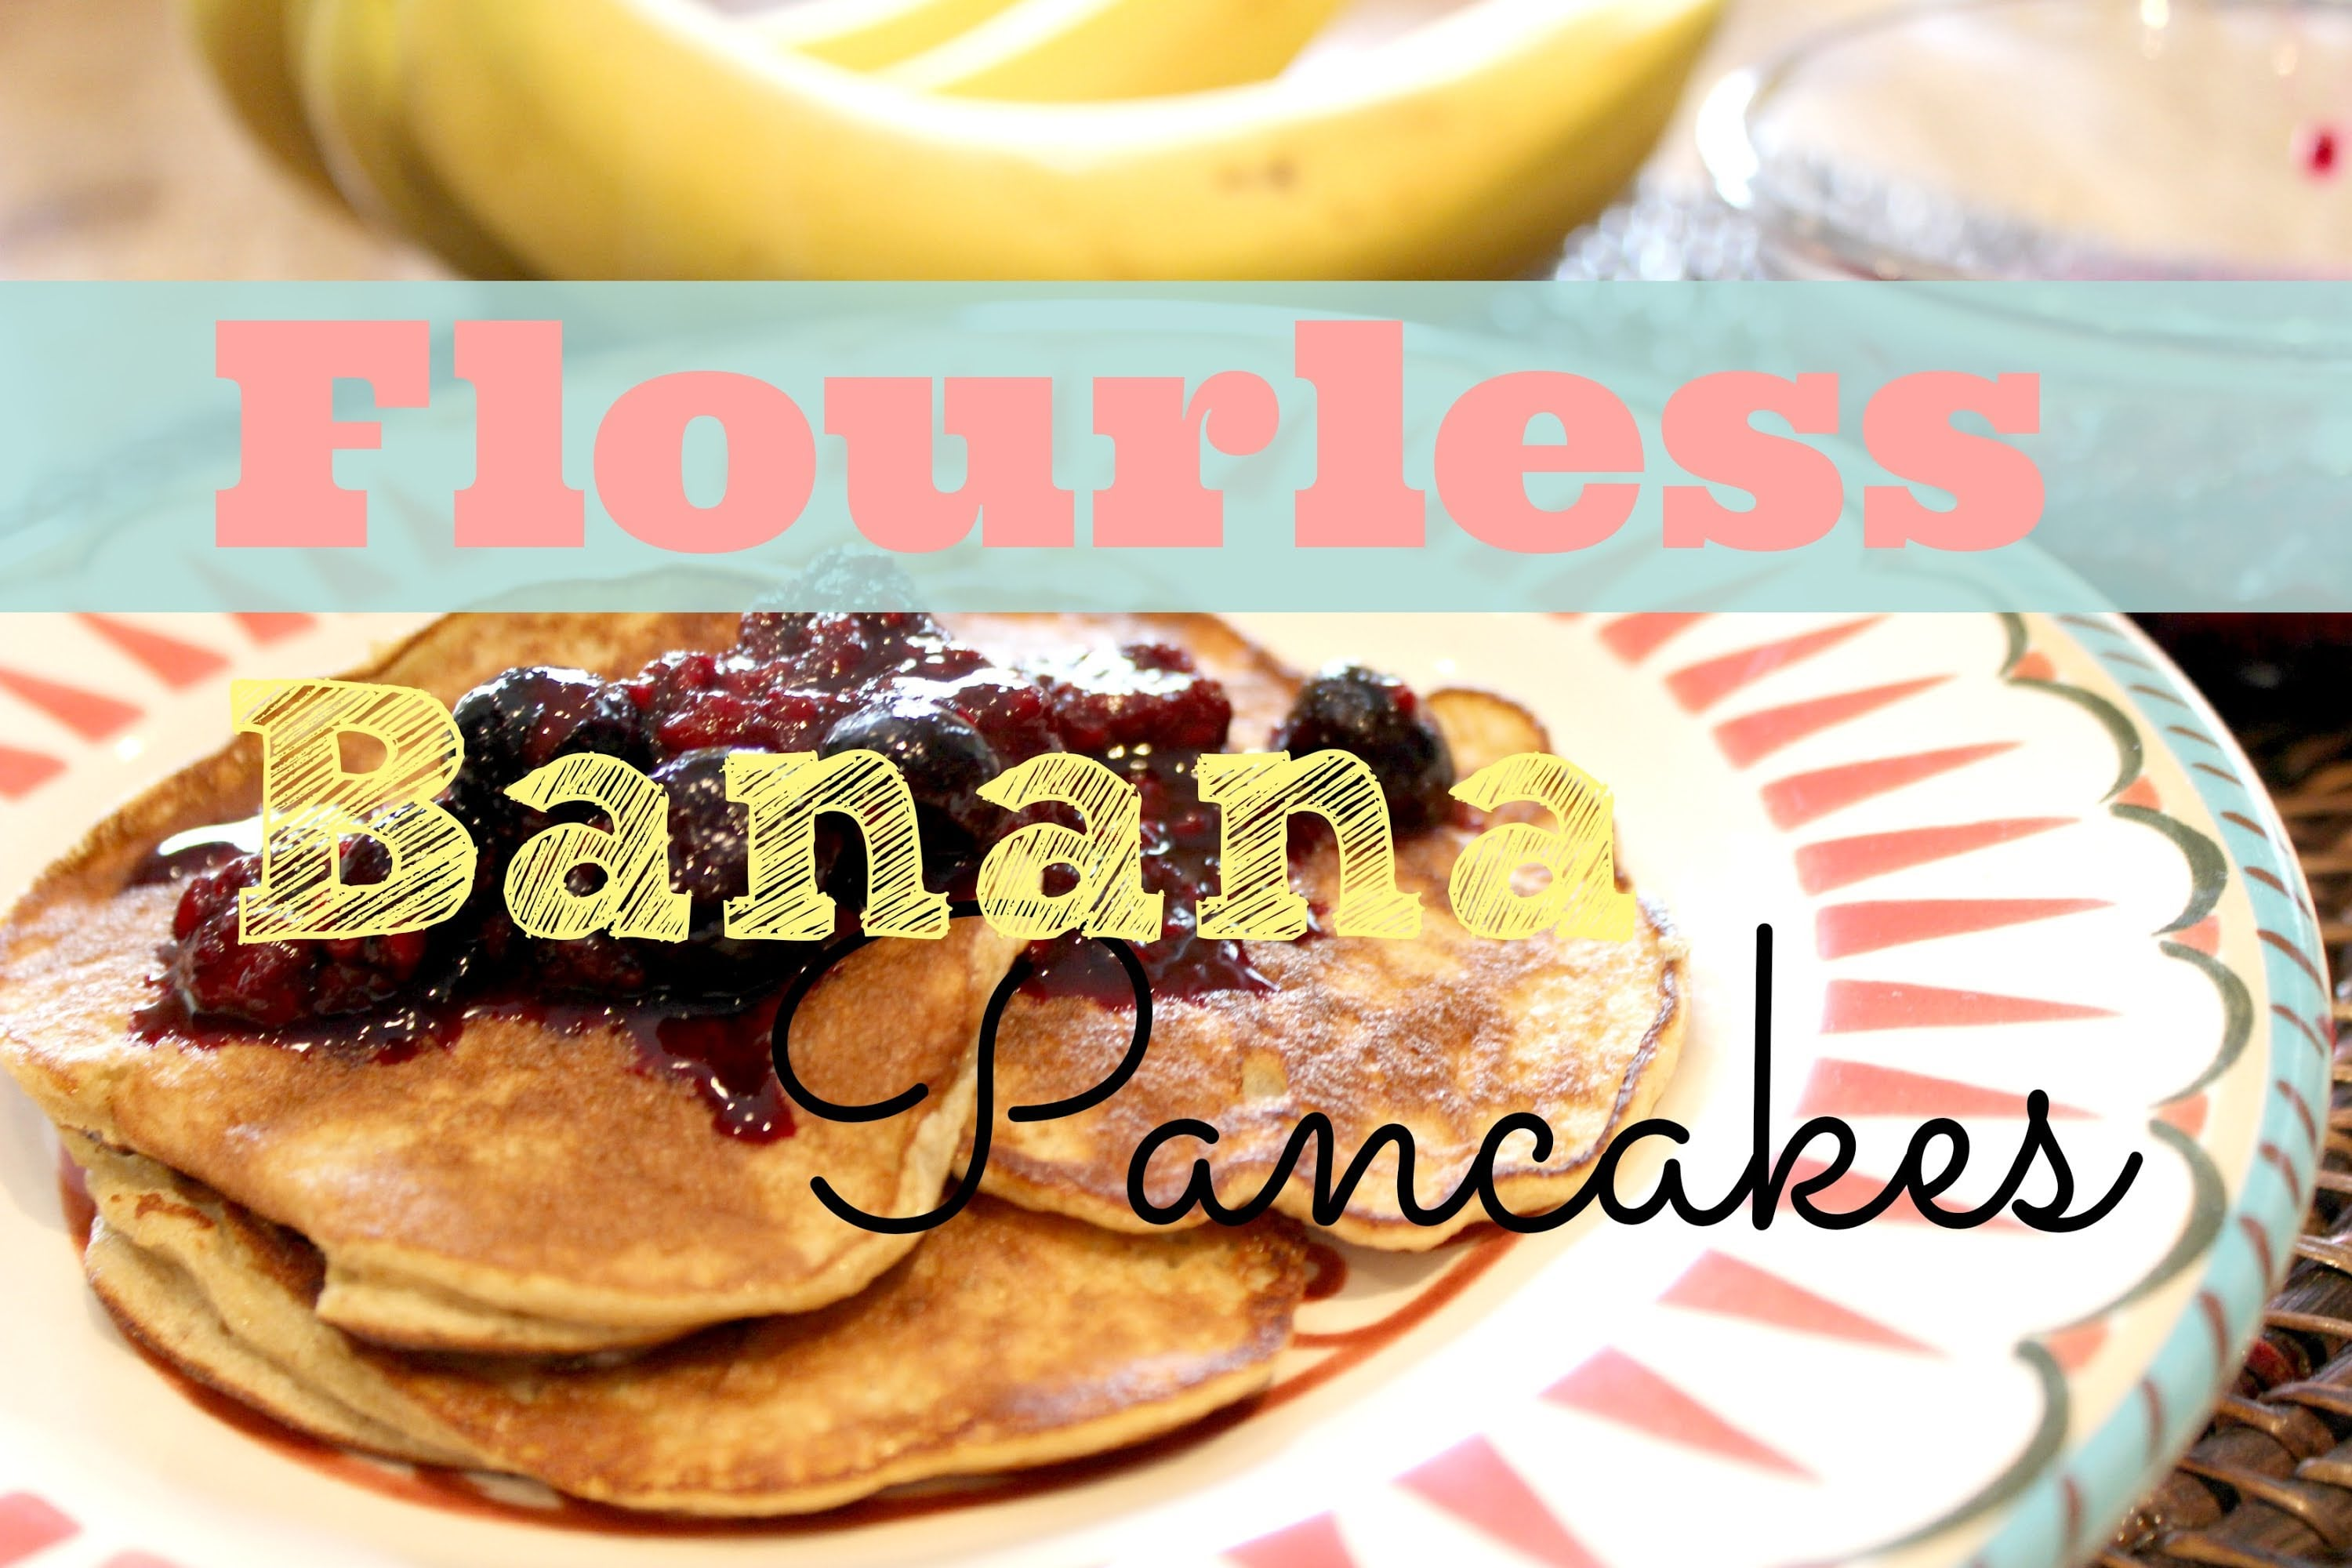 Healthy Breakfast Recipe: How To Make Banana Pancakes | Flourless, Gluten-Free, Low-Fat